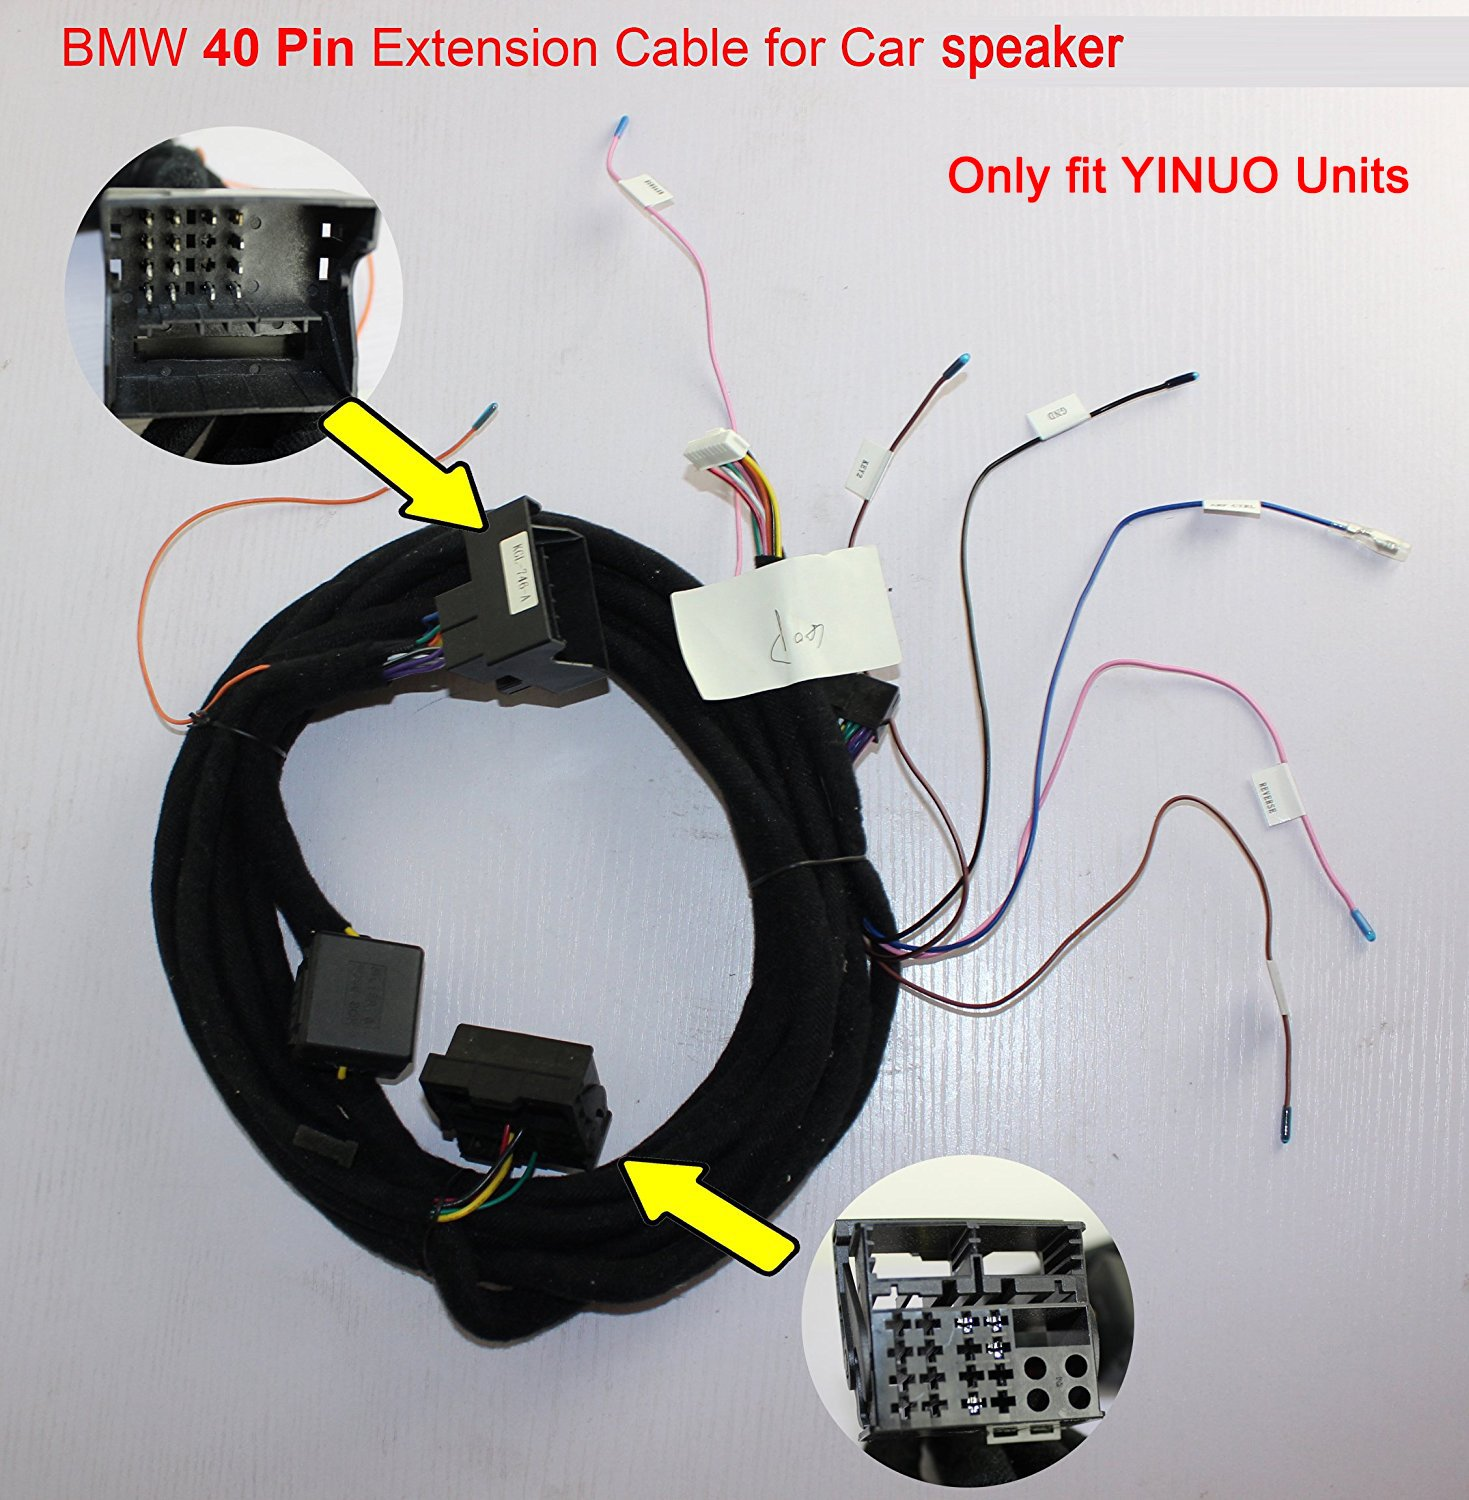 Yinuo B40 6 Long Speaker Cable With 40 Pin Connector For Bmw E39 Wiring 5 Series 2002 2003 X5 E53 2007 Range Rover 2004 M5